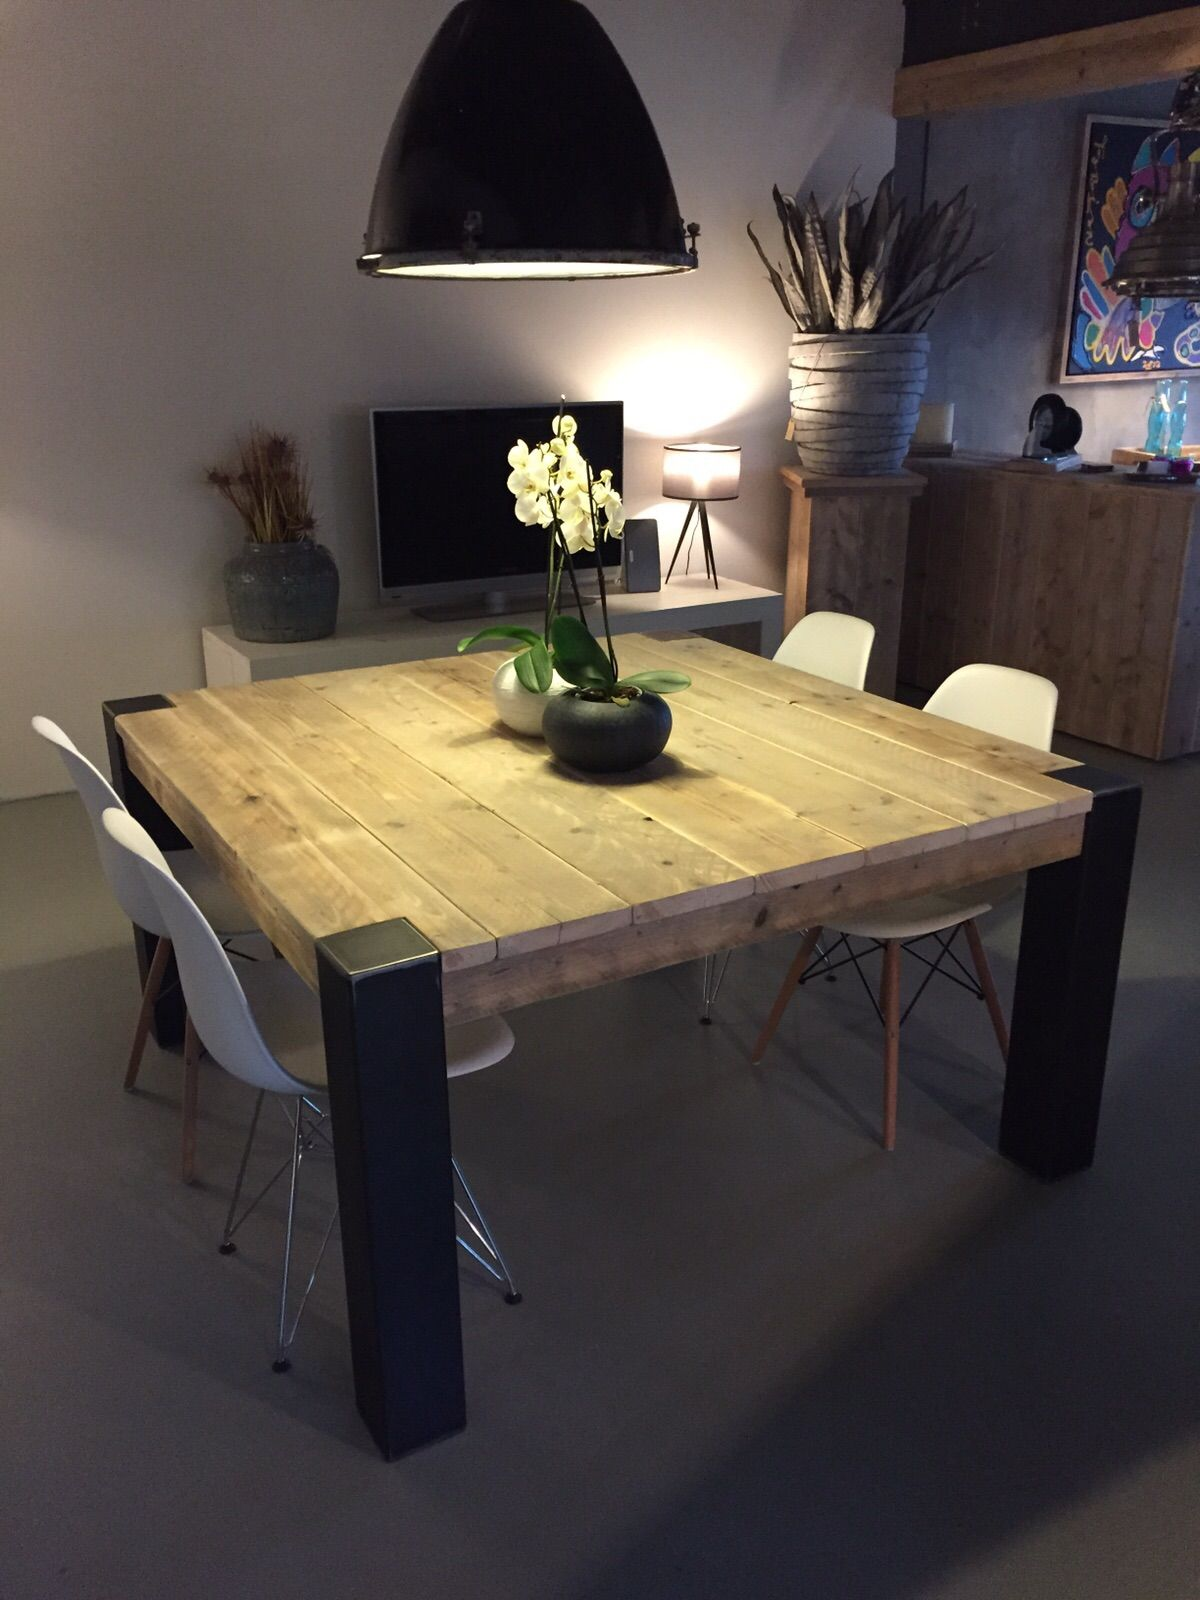 Table carr e avec pieds en m tal brut tables en ancien - Table industrielle rallonge ...